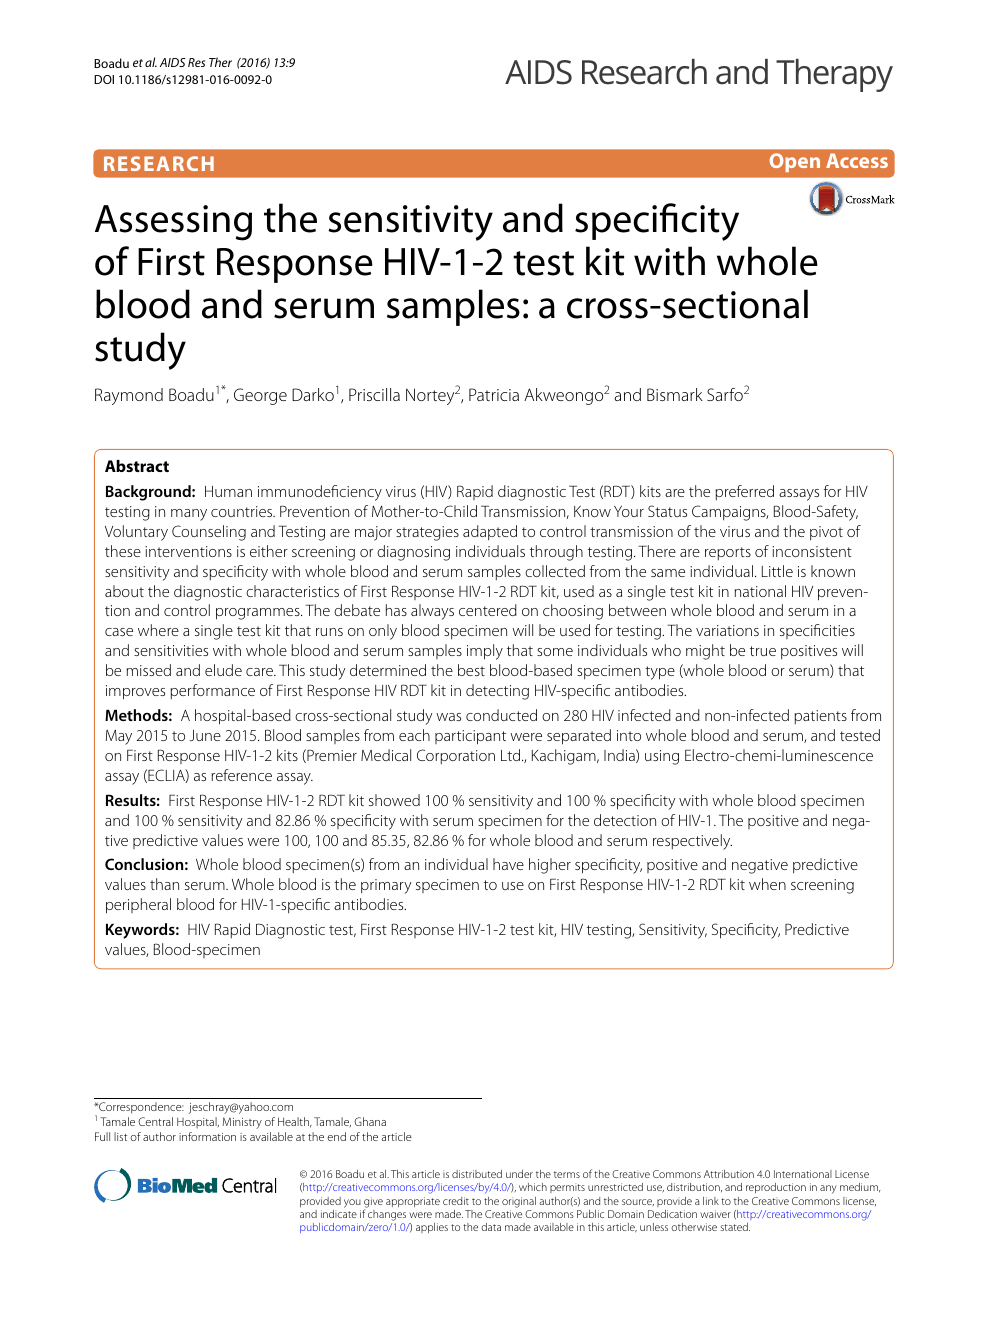 Assessing the sensitivity and specificity of First Response